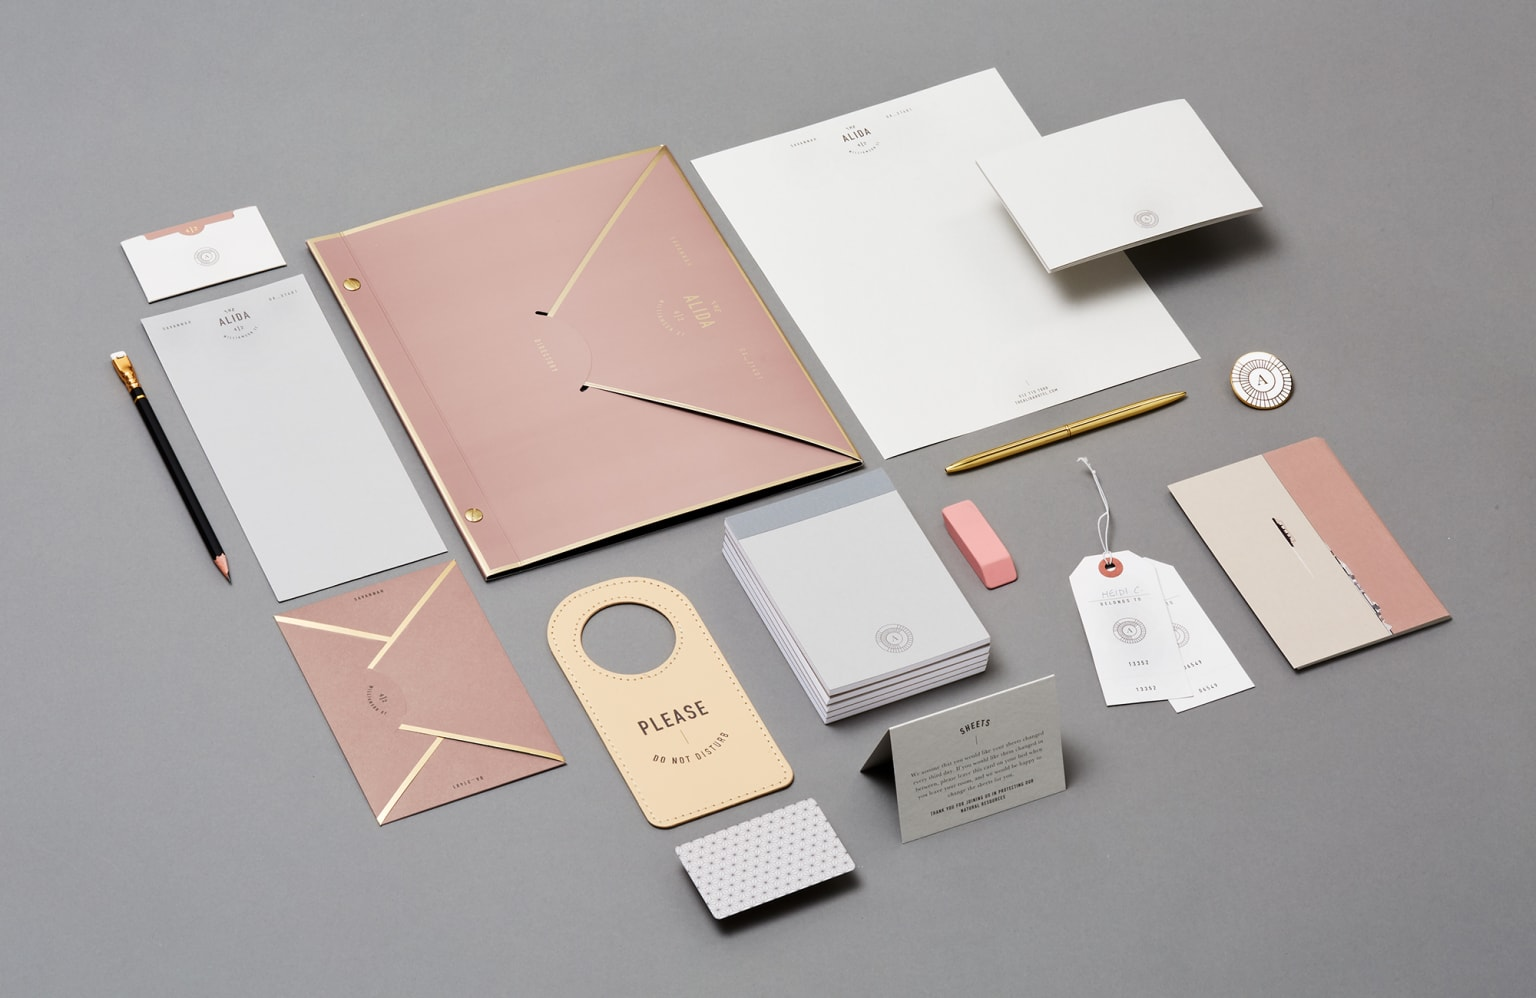 Visual Identity and collateral for the Alida Hotel in Savannah